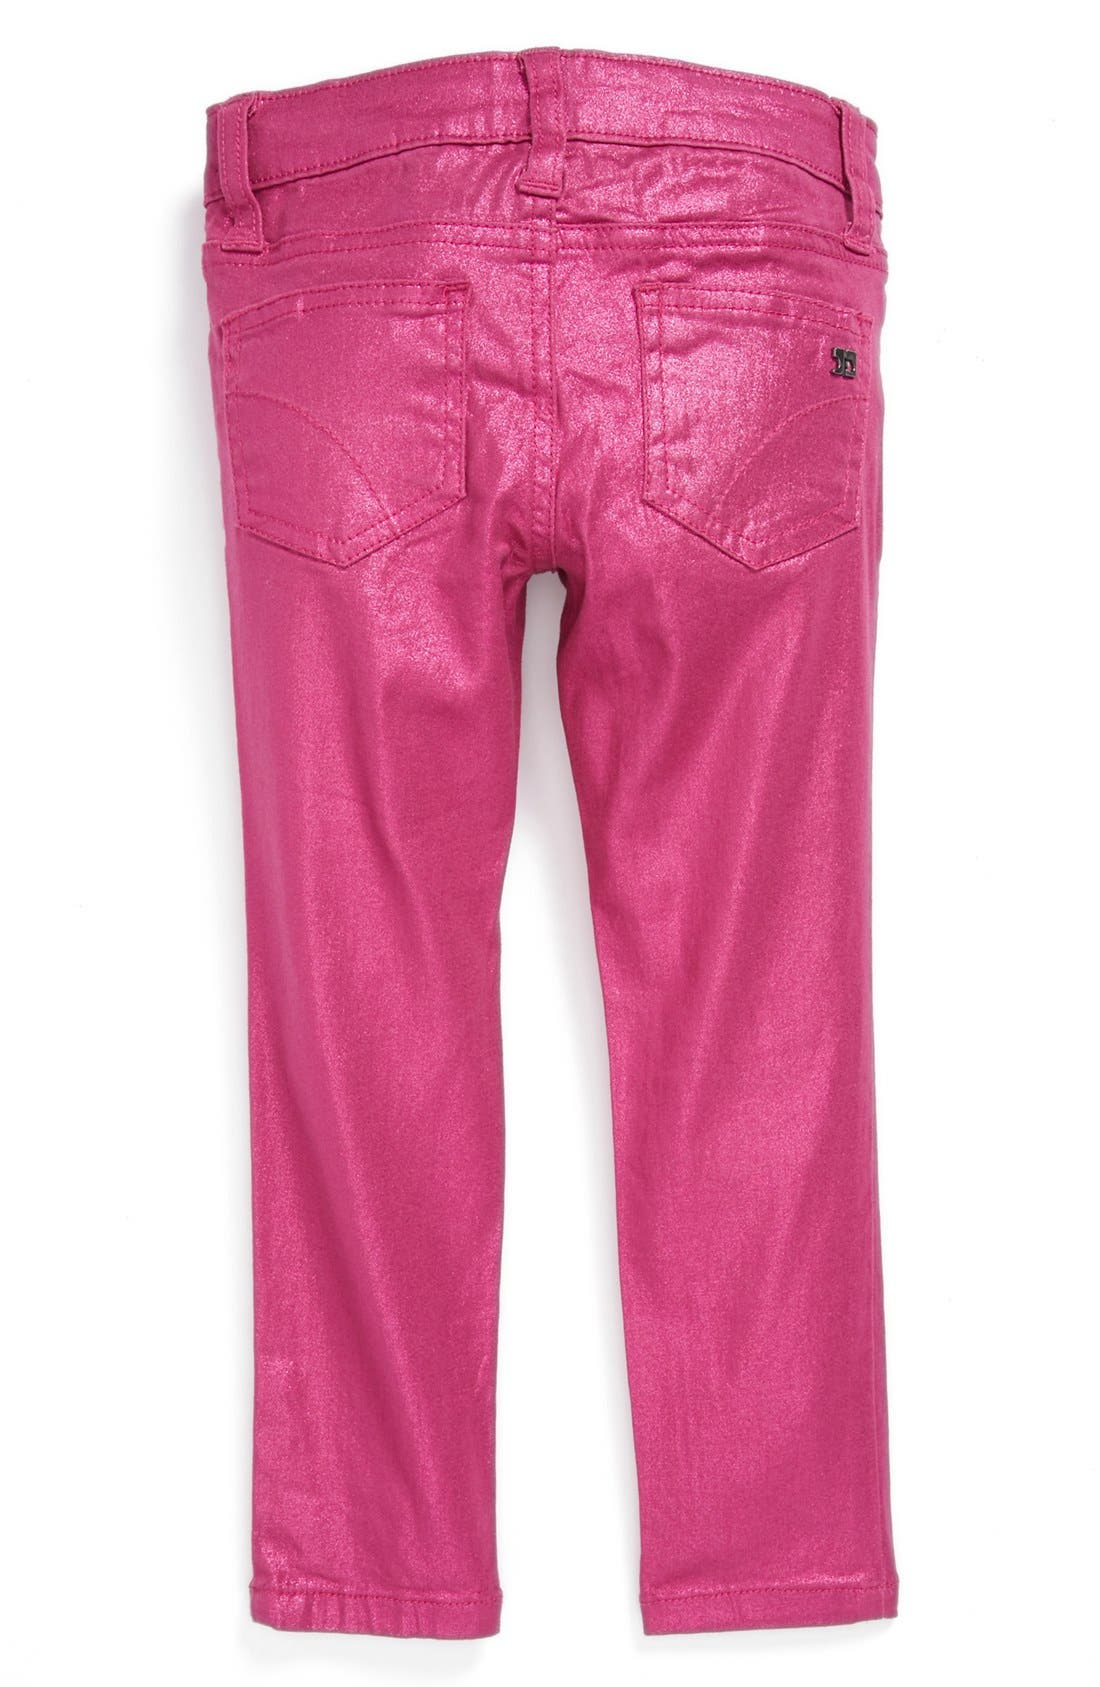 Alternate Image 1 Selected - Joe's Metallic Skinny Denim Jeans (Toddler Girls)